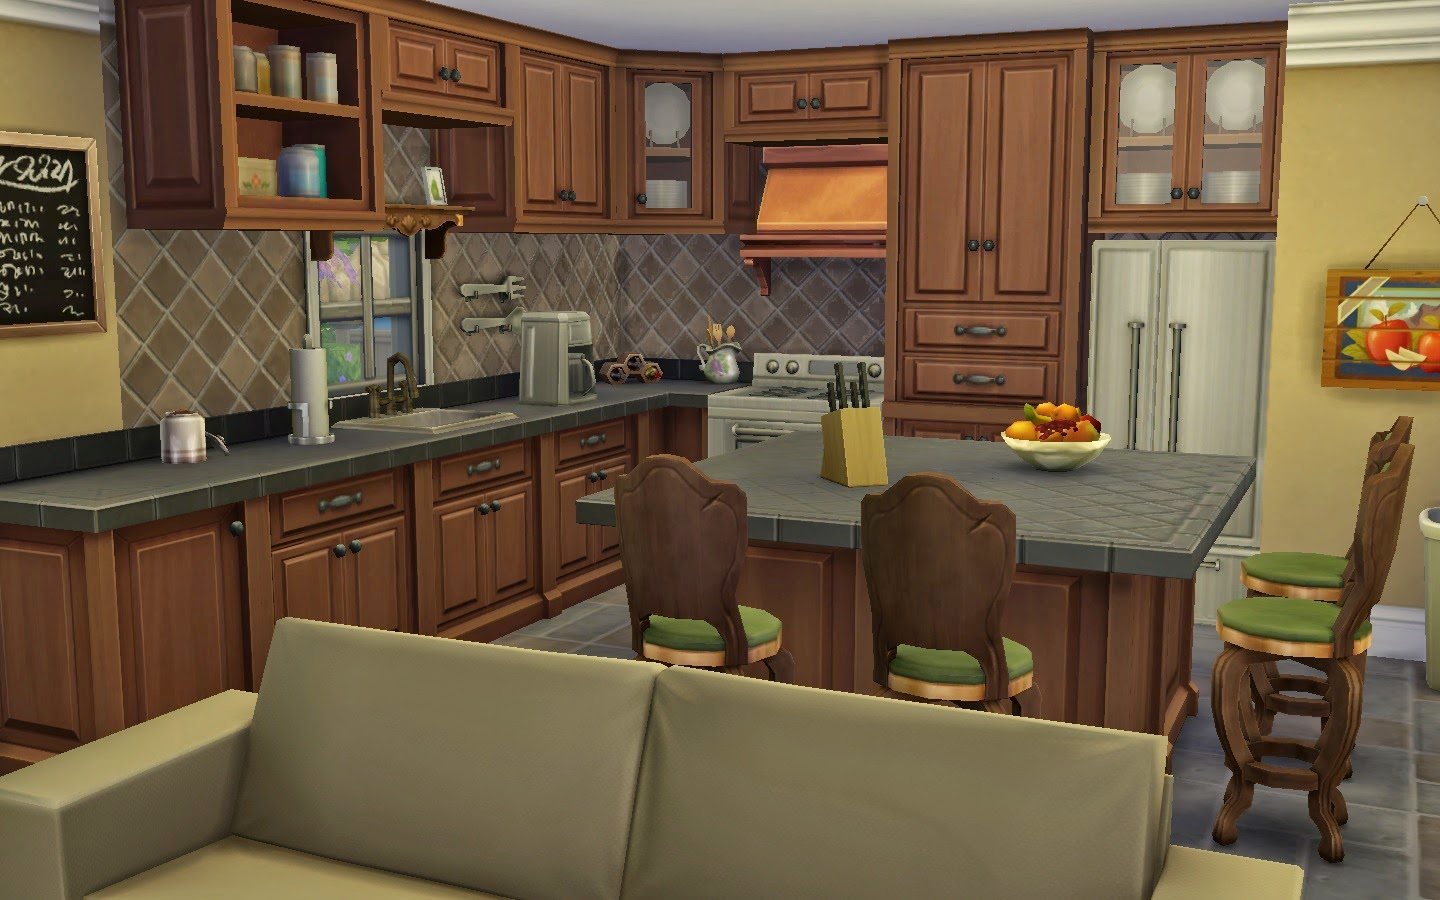 Mod The Sims - Looking for sims 4 kitchen conversion for TS3